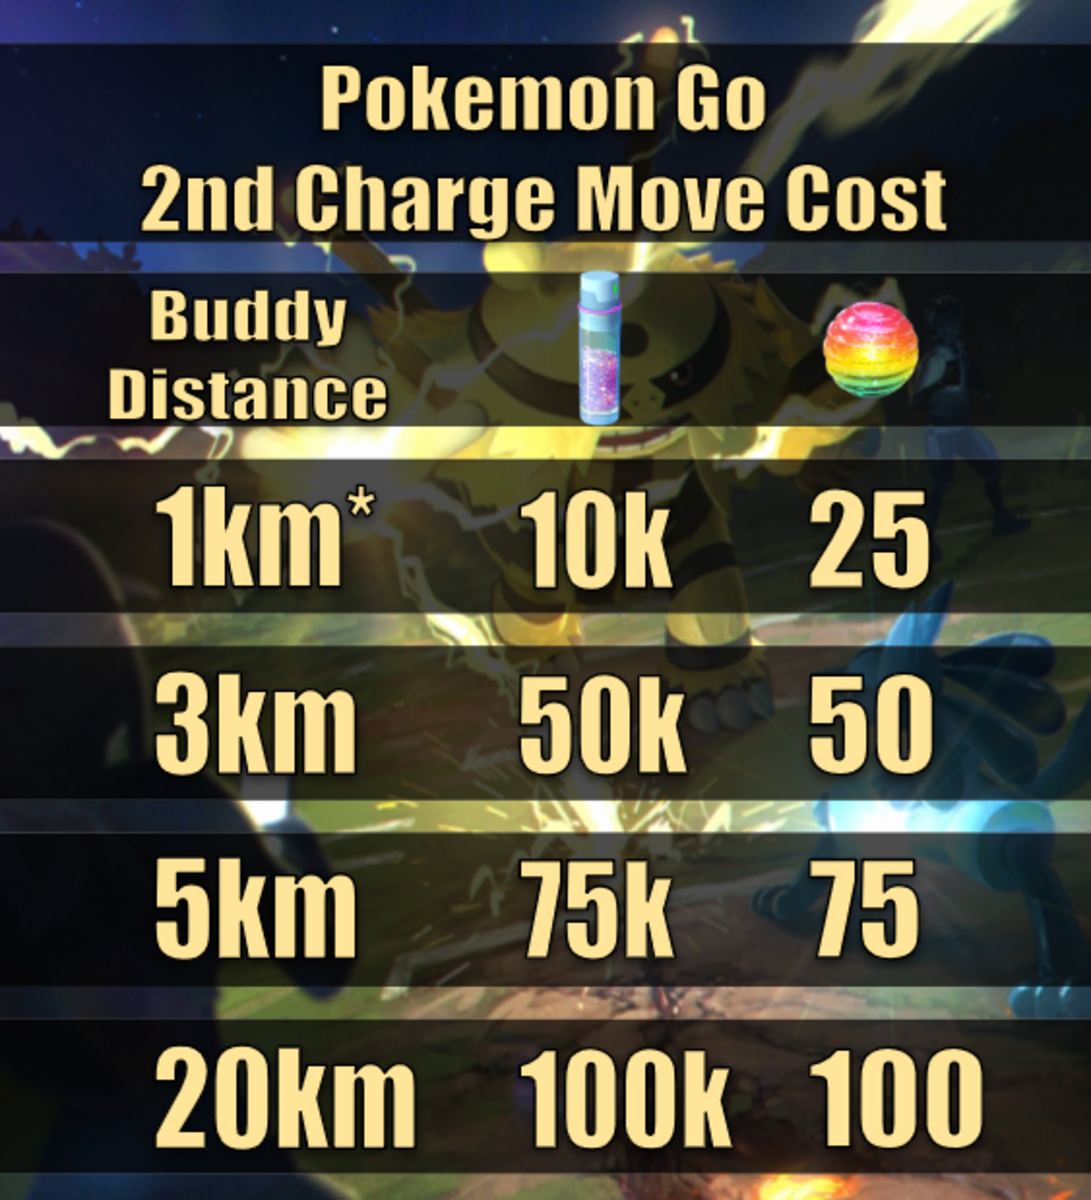 The cost charge for unlocking charge moves compared to buddy distance. The one exception is that starter Pokemon also cost 10k stardust and 25 candy instead of 50k/50 as their walking distance implies.